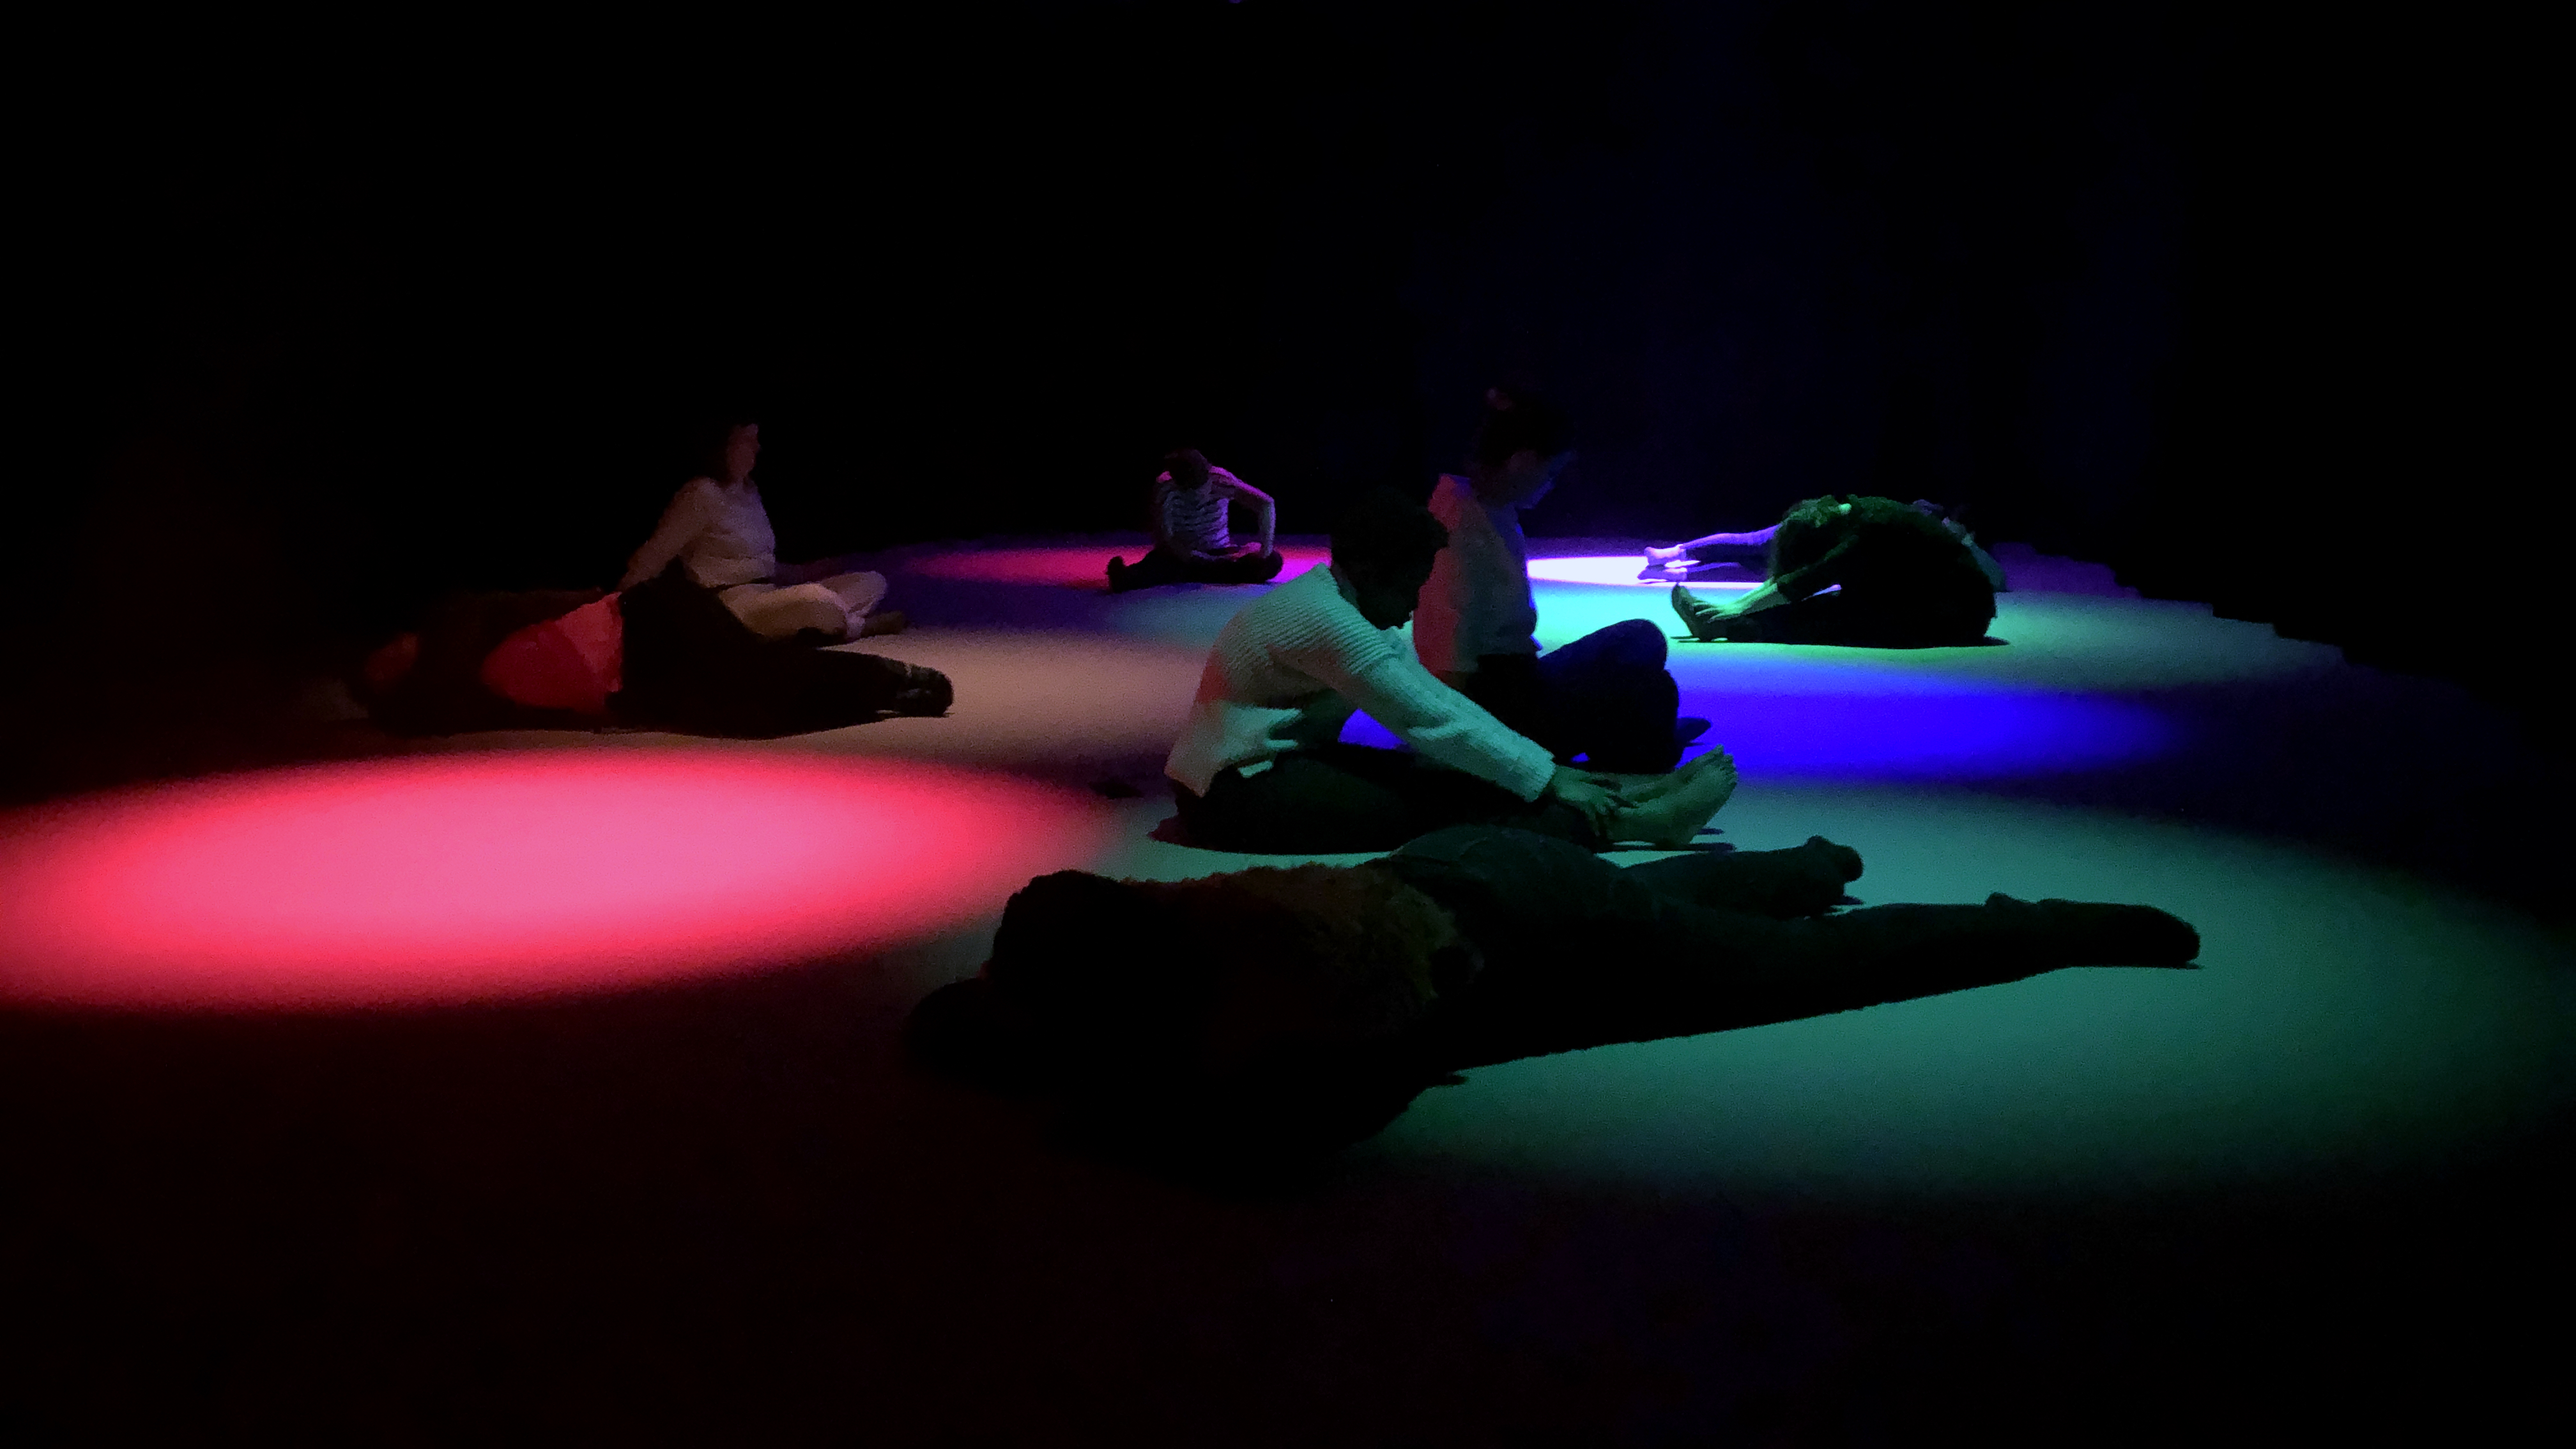 Participants sit on the floor with cyan, red, and blue light covering them and their surroundings.